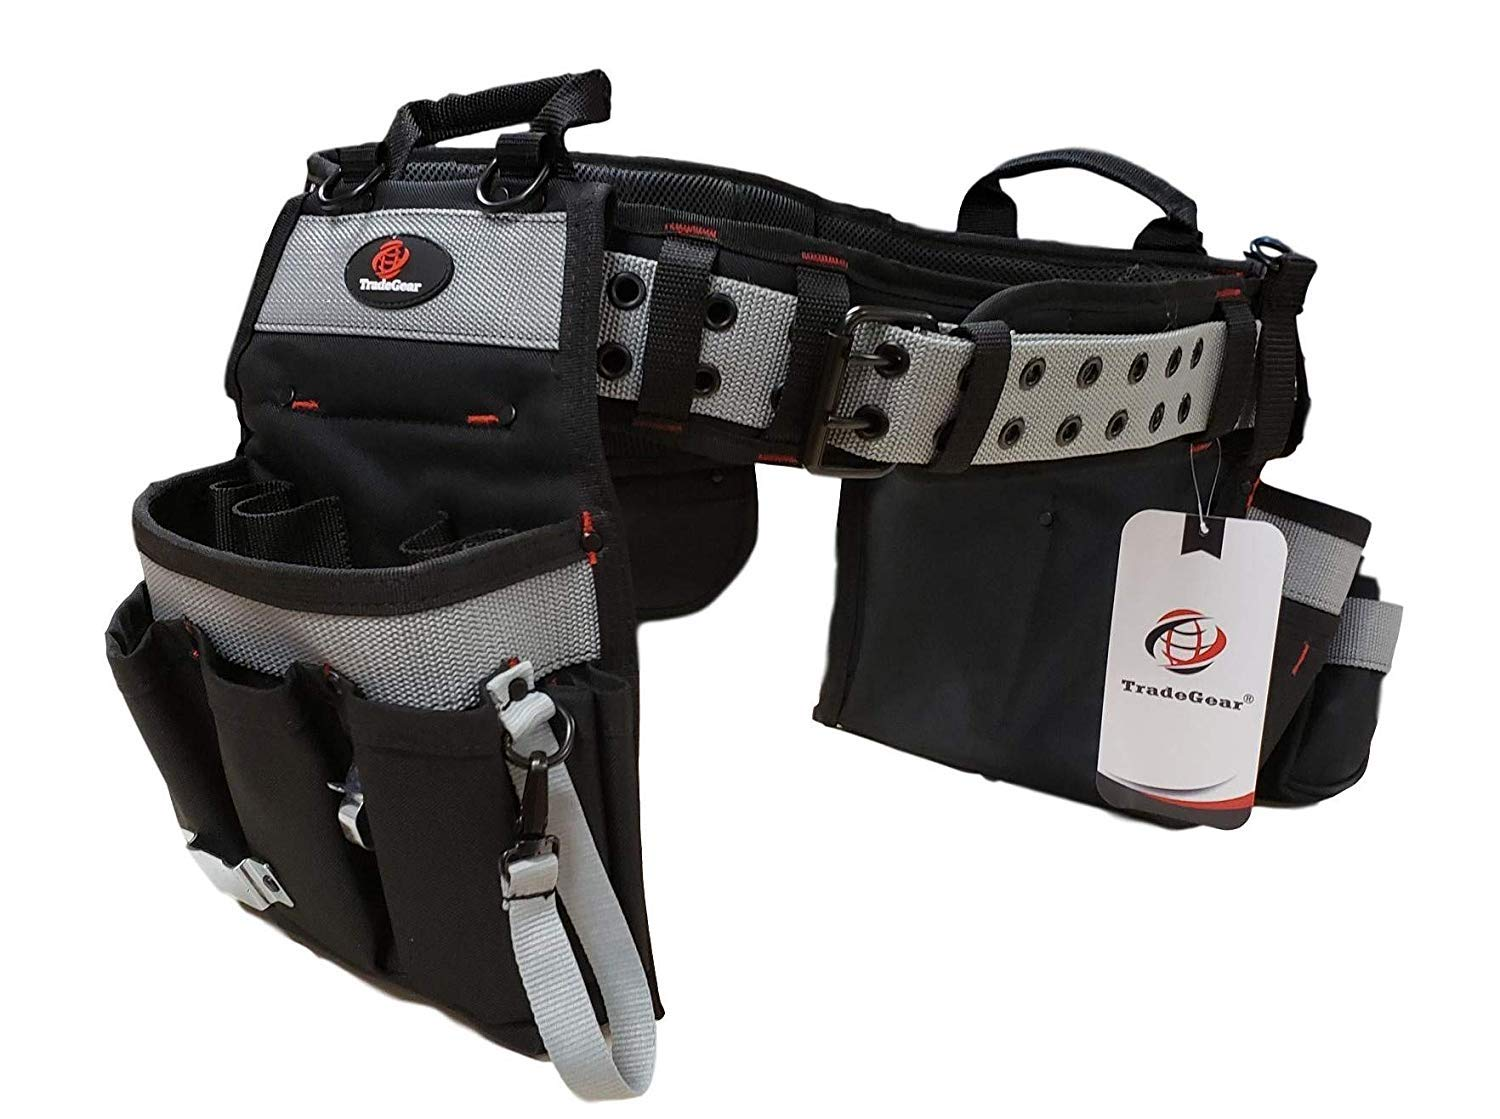 TradeGear Part#SZA Electrician's Belt & Bag Combo - Heavy Duty Electricians Tool Belt Designed for Maximum Comfort & Durability - Ideal for All Electricians Tools - Fits Sizes S - L (26''-40'') by TradeGear